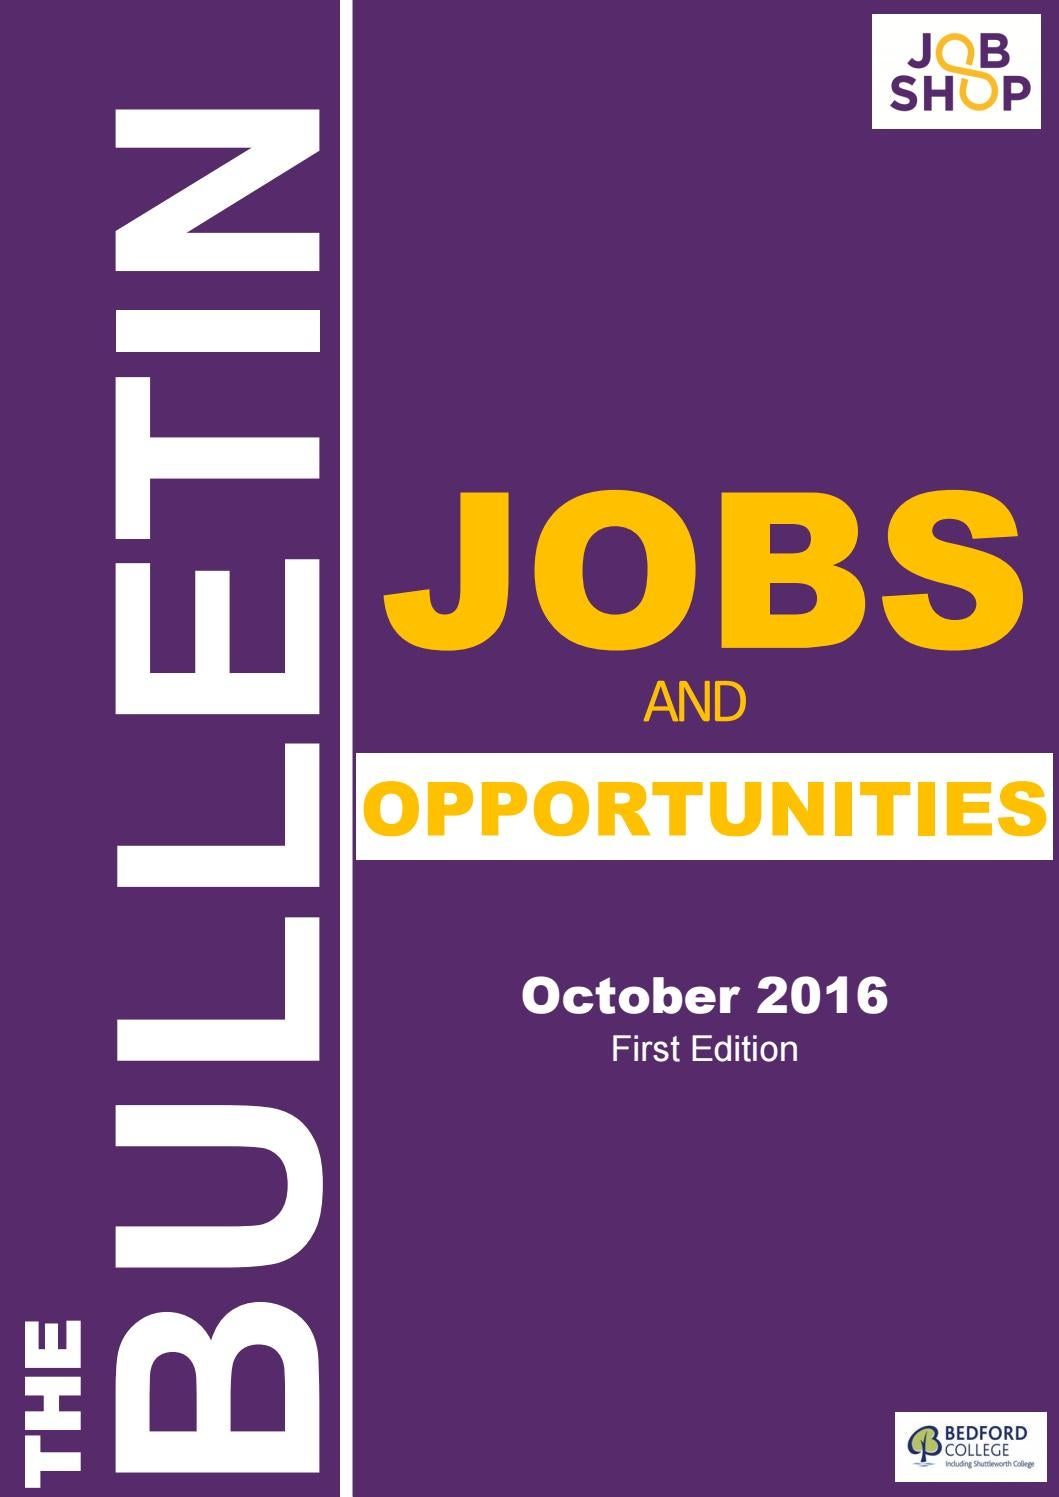 Jobs opportunities bulletin 1 oct16 by the bedford college jobs opportunities bulletin 1 oct16 by the bedford college group issuu falaconquin